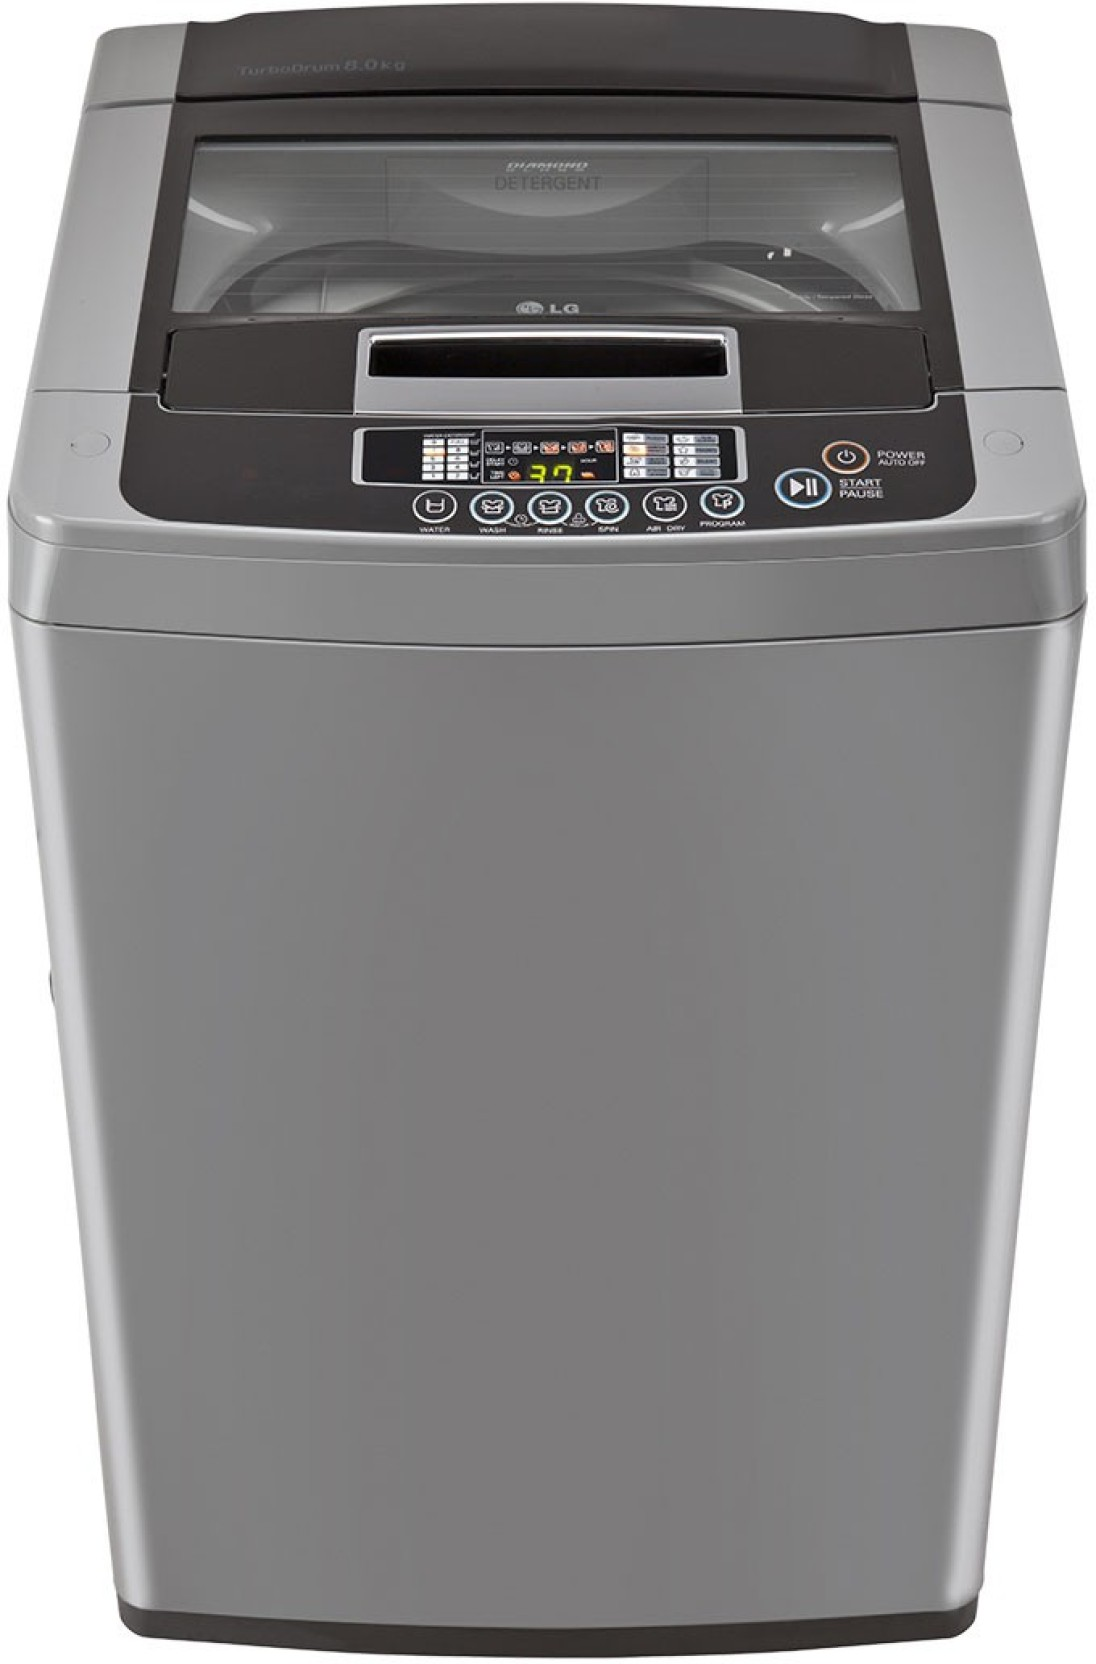 LG 6.5 kg Fully Automatic Top Load Washing Machine Price ...